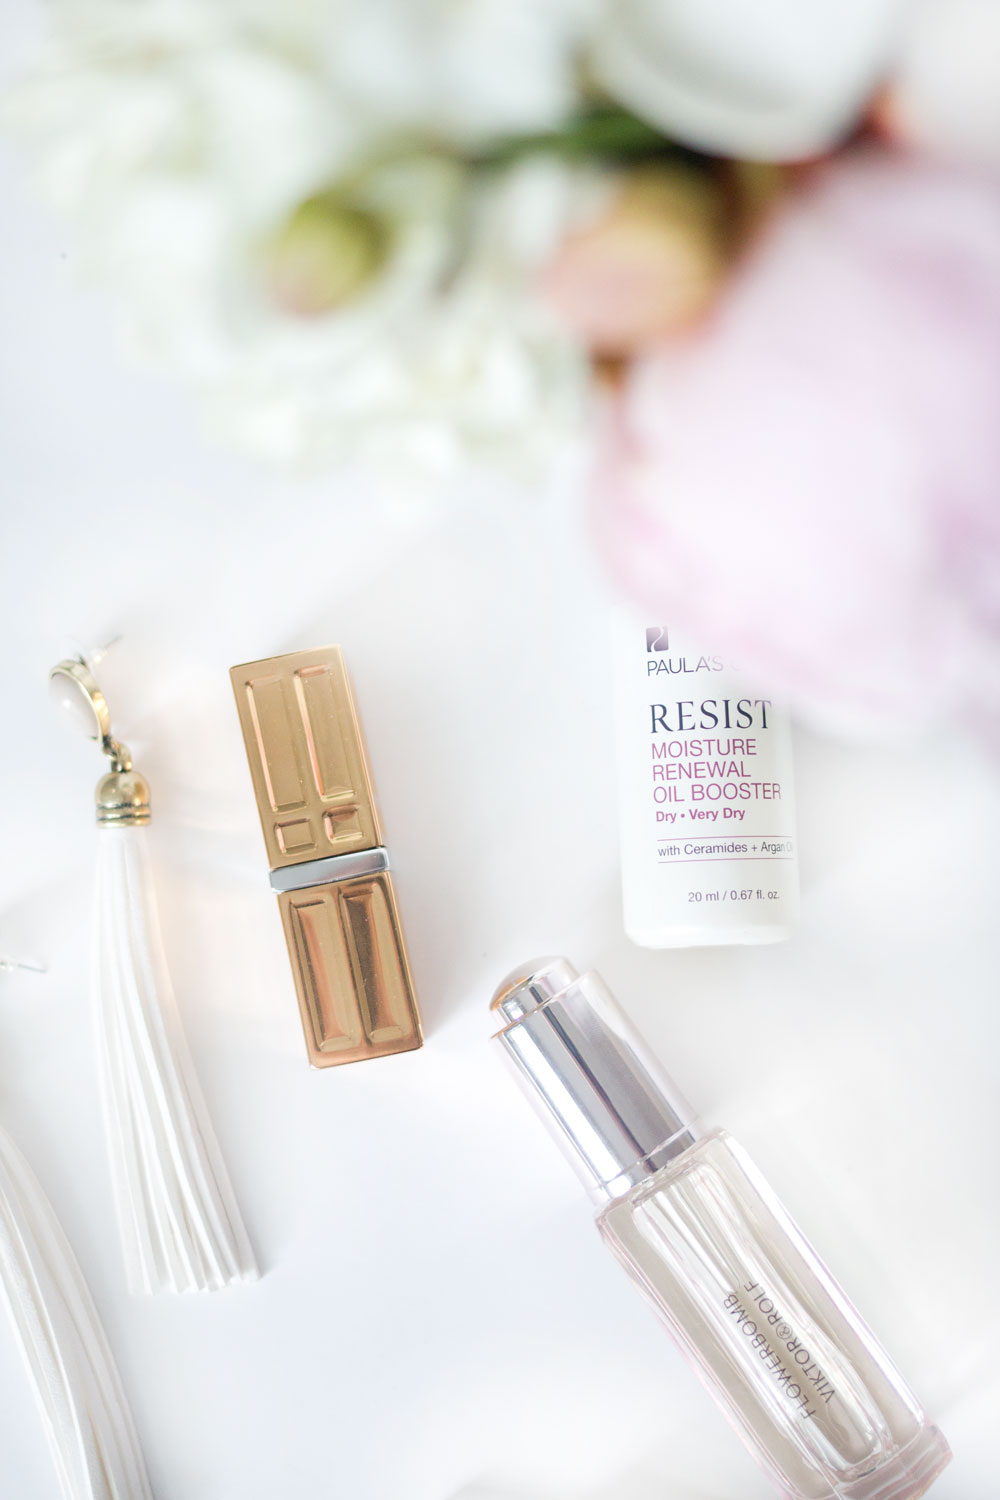 Spring Beauty Favorites: Elizabeth Arden Lipstick, Adia Kibur Stella Earrings, Viktor + Rolf Precious Oil, Paula's Choie Renewal Boosting Oil // Hello Rigby Seattle Fashion & Beauty Blog